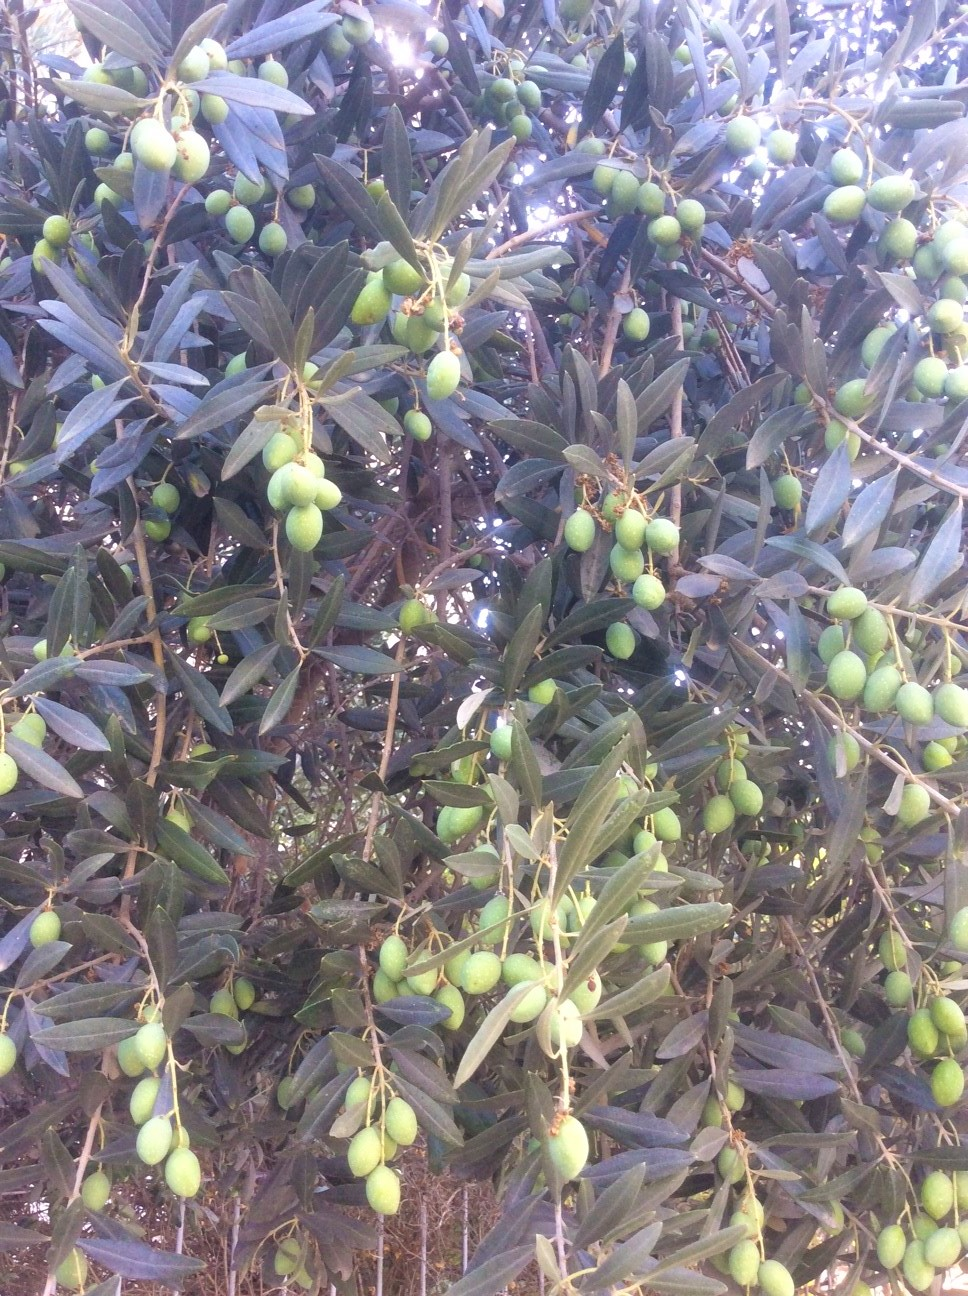 The olive harvest is looking to be a good one this year.